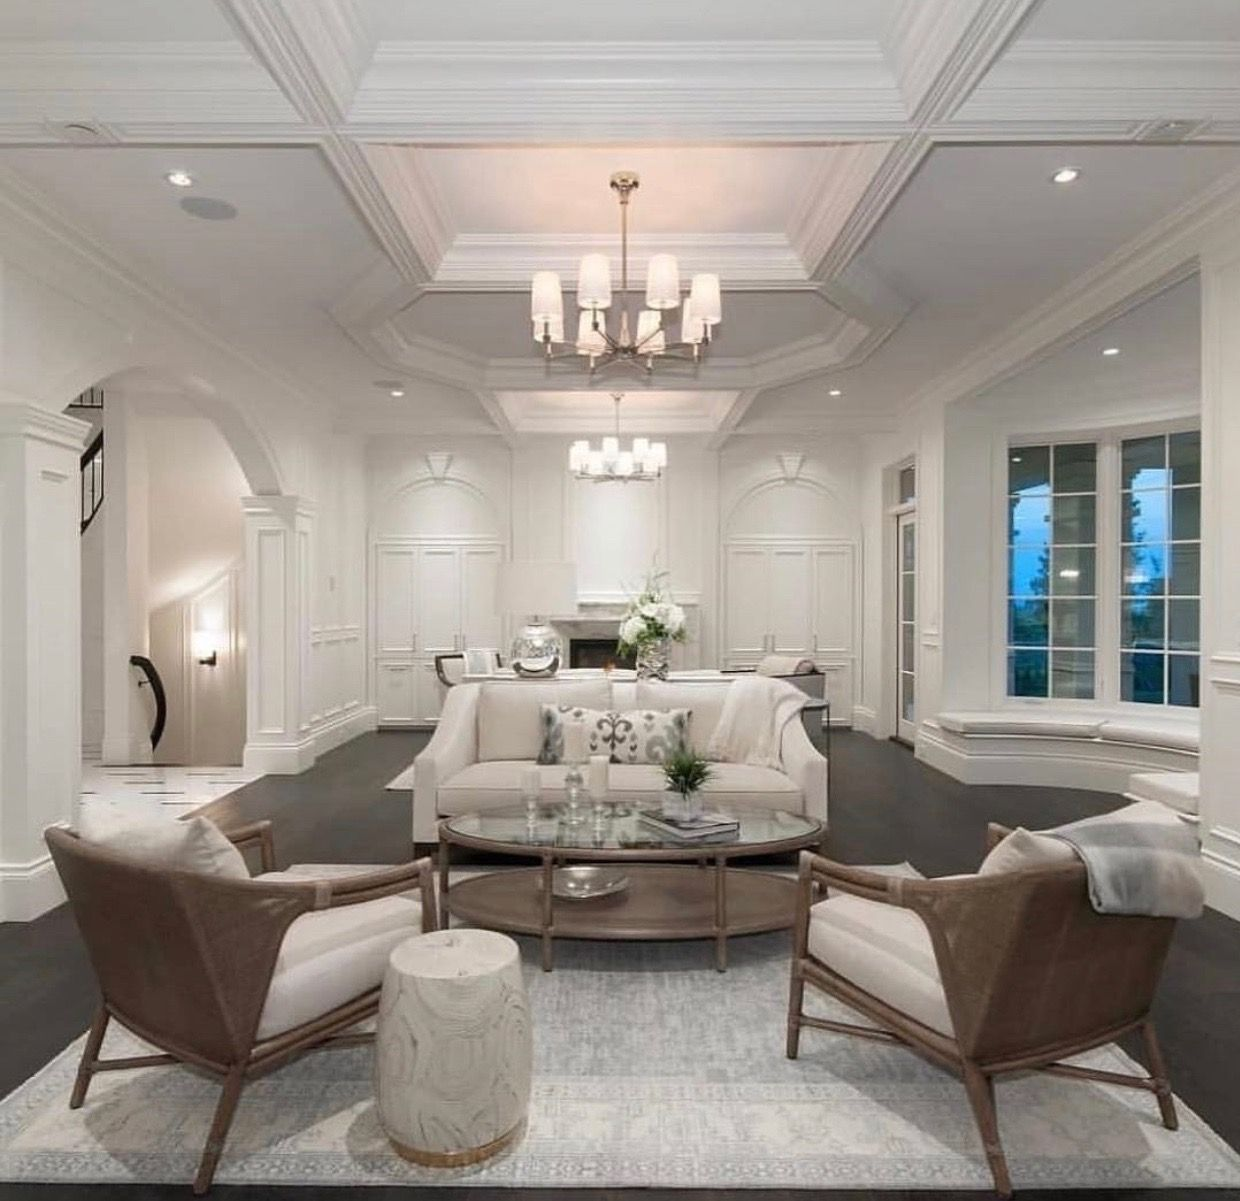 Pin by Dawn Davis on Living room | Mansions luxury, Real ...